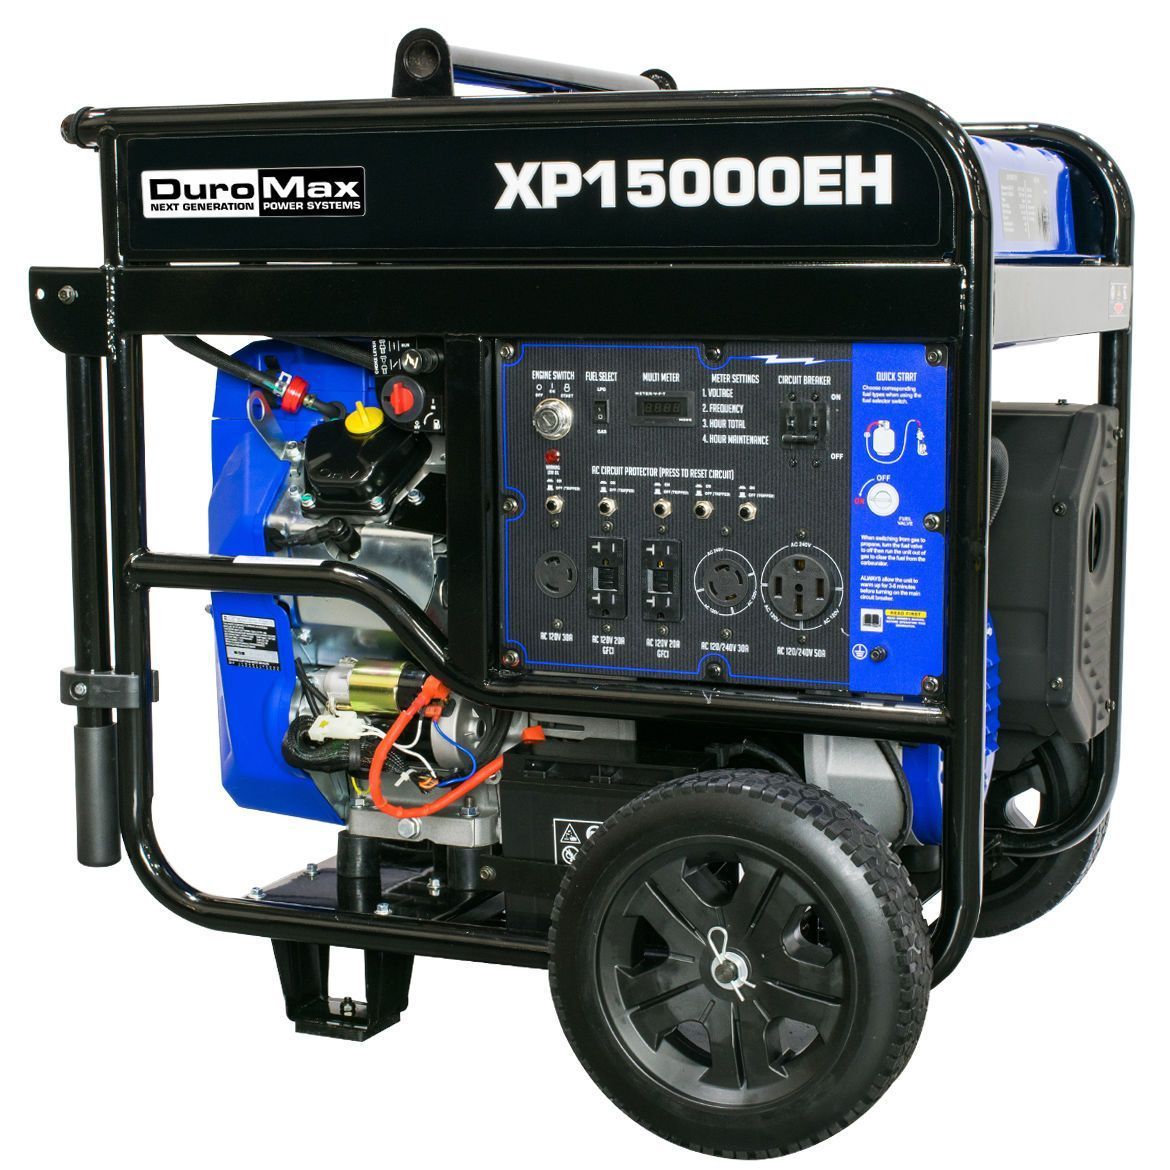 The DuroMax XP15000EH provides the power of a large home